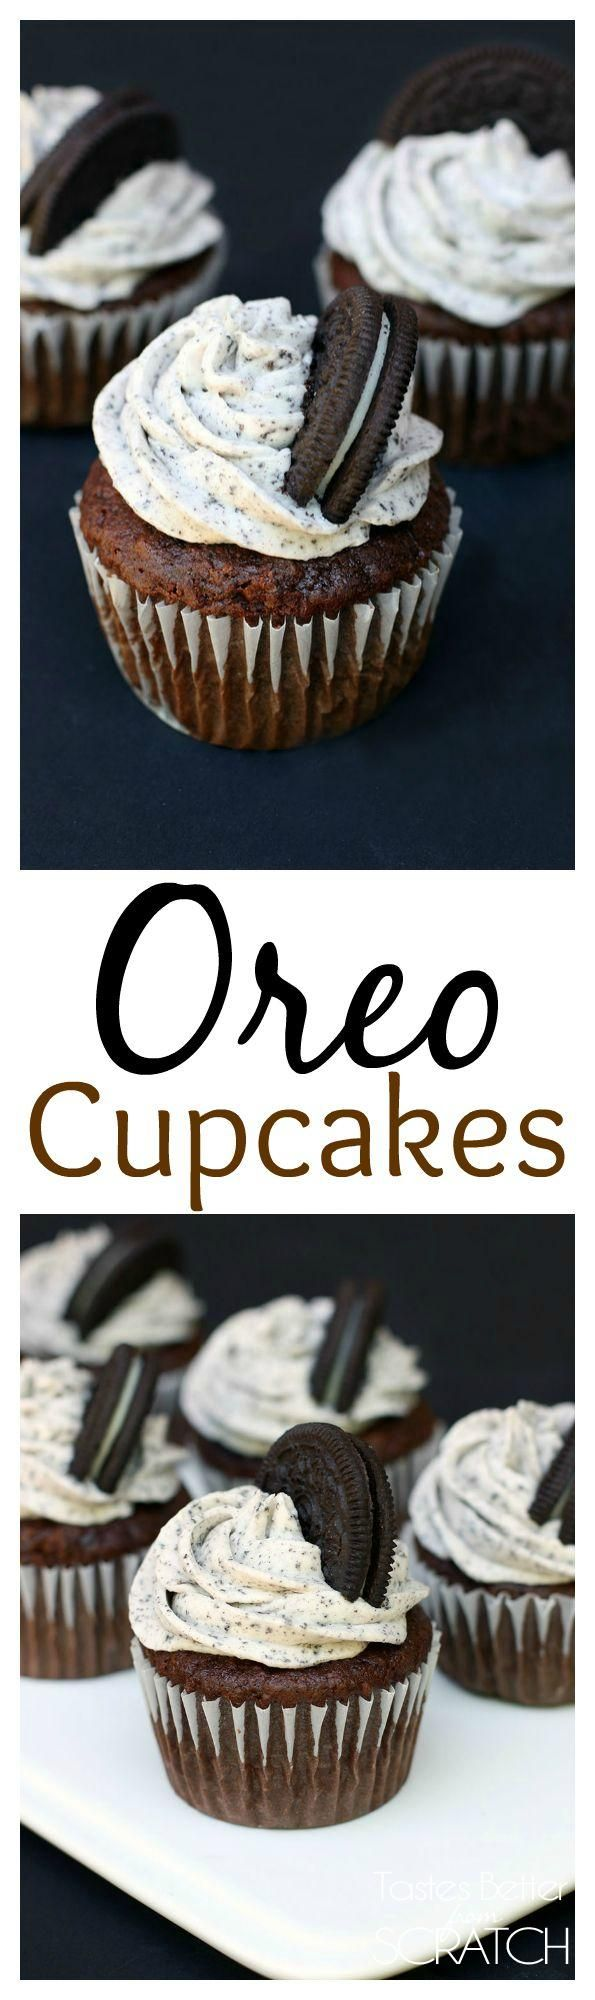 Chocolate cupcakes with Oreo Cream Frosting recipe from Tastes Better From Scratch